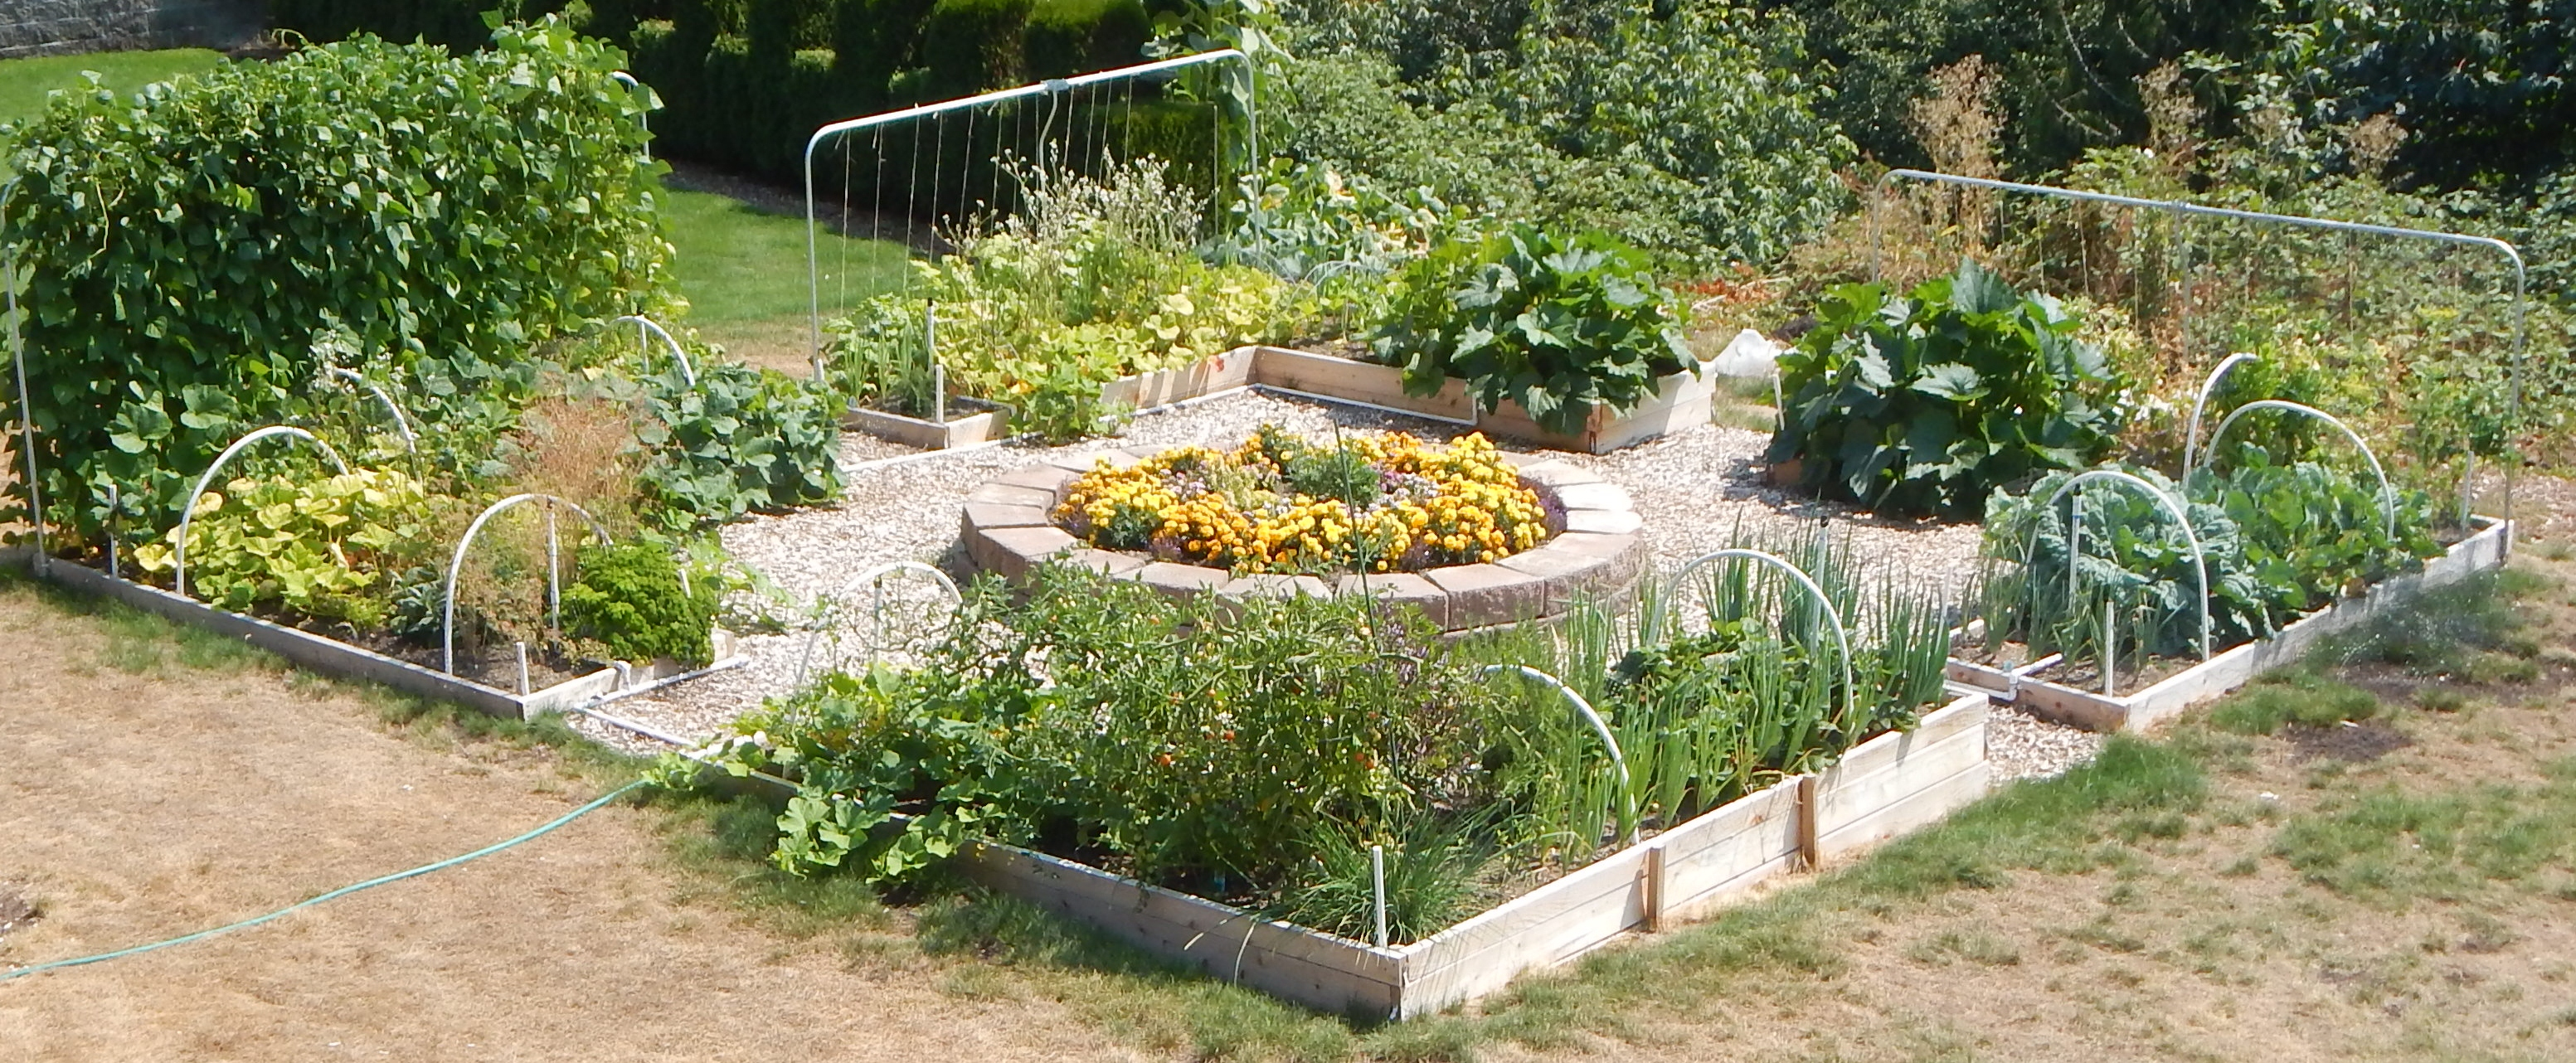 garden design garden design with raised beds soil depth